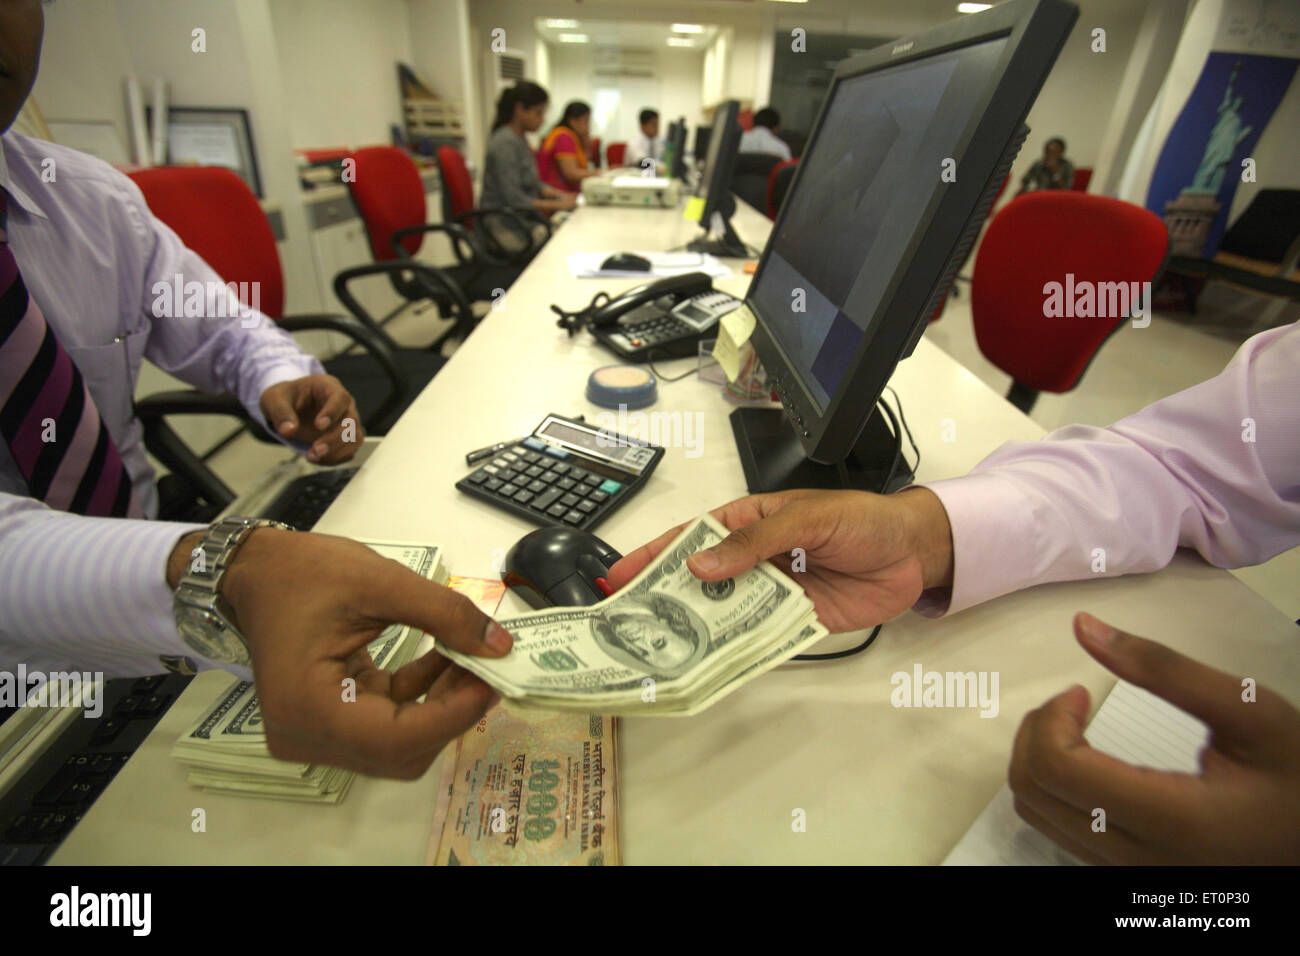 Men handing over us dollars - Stock Image